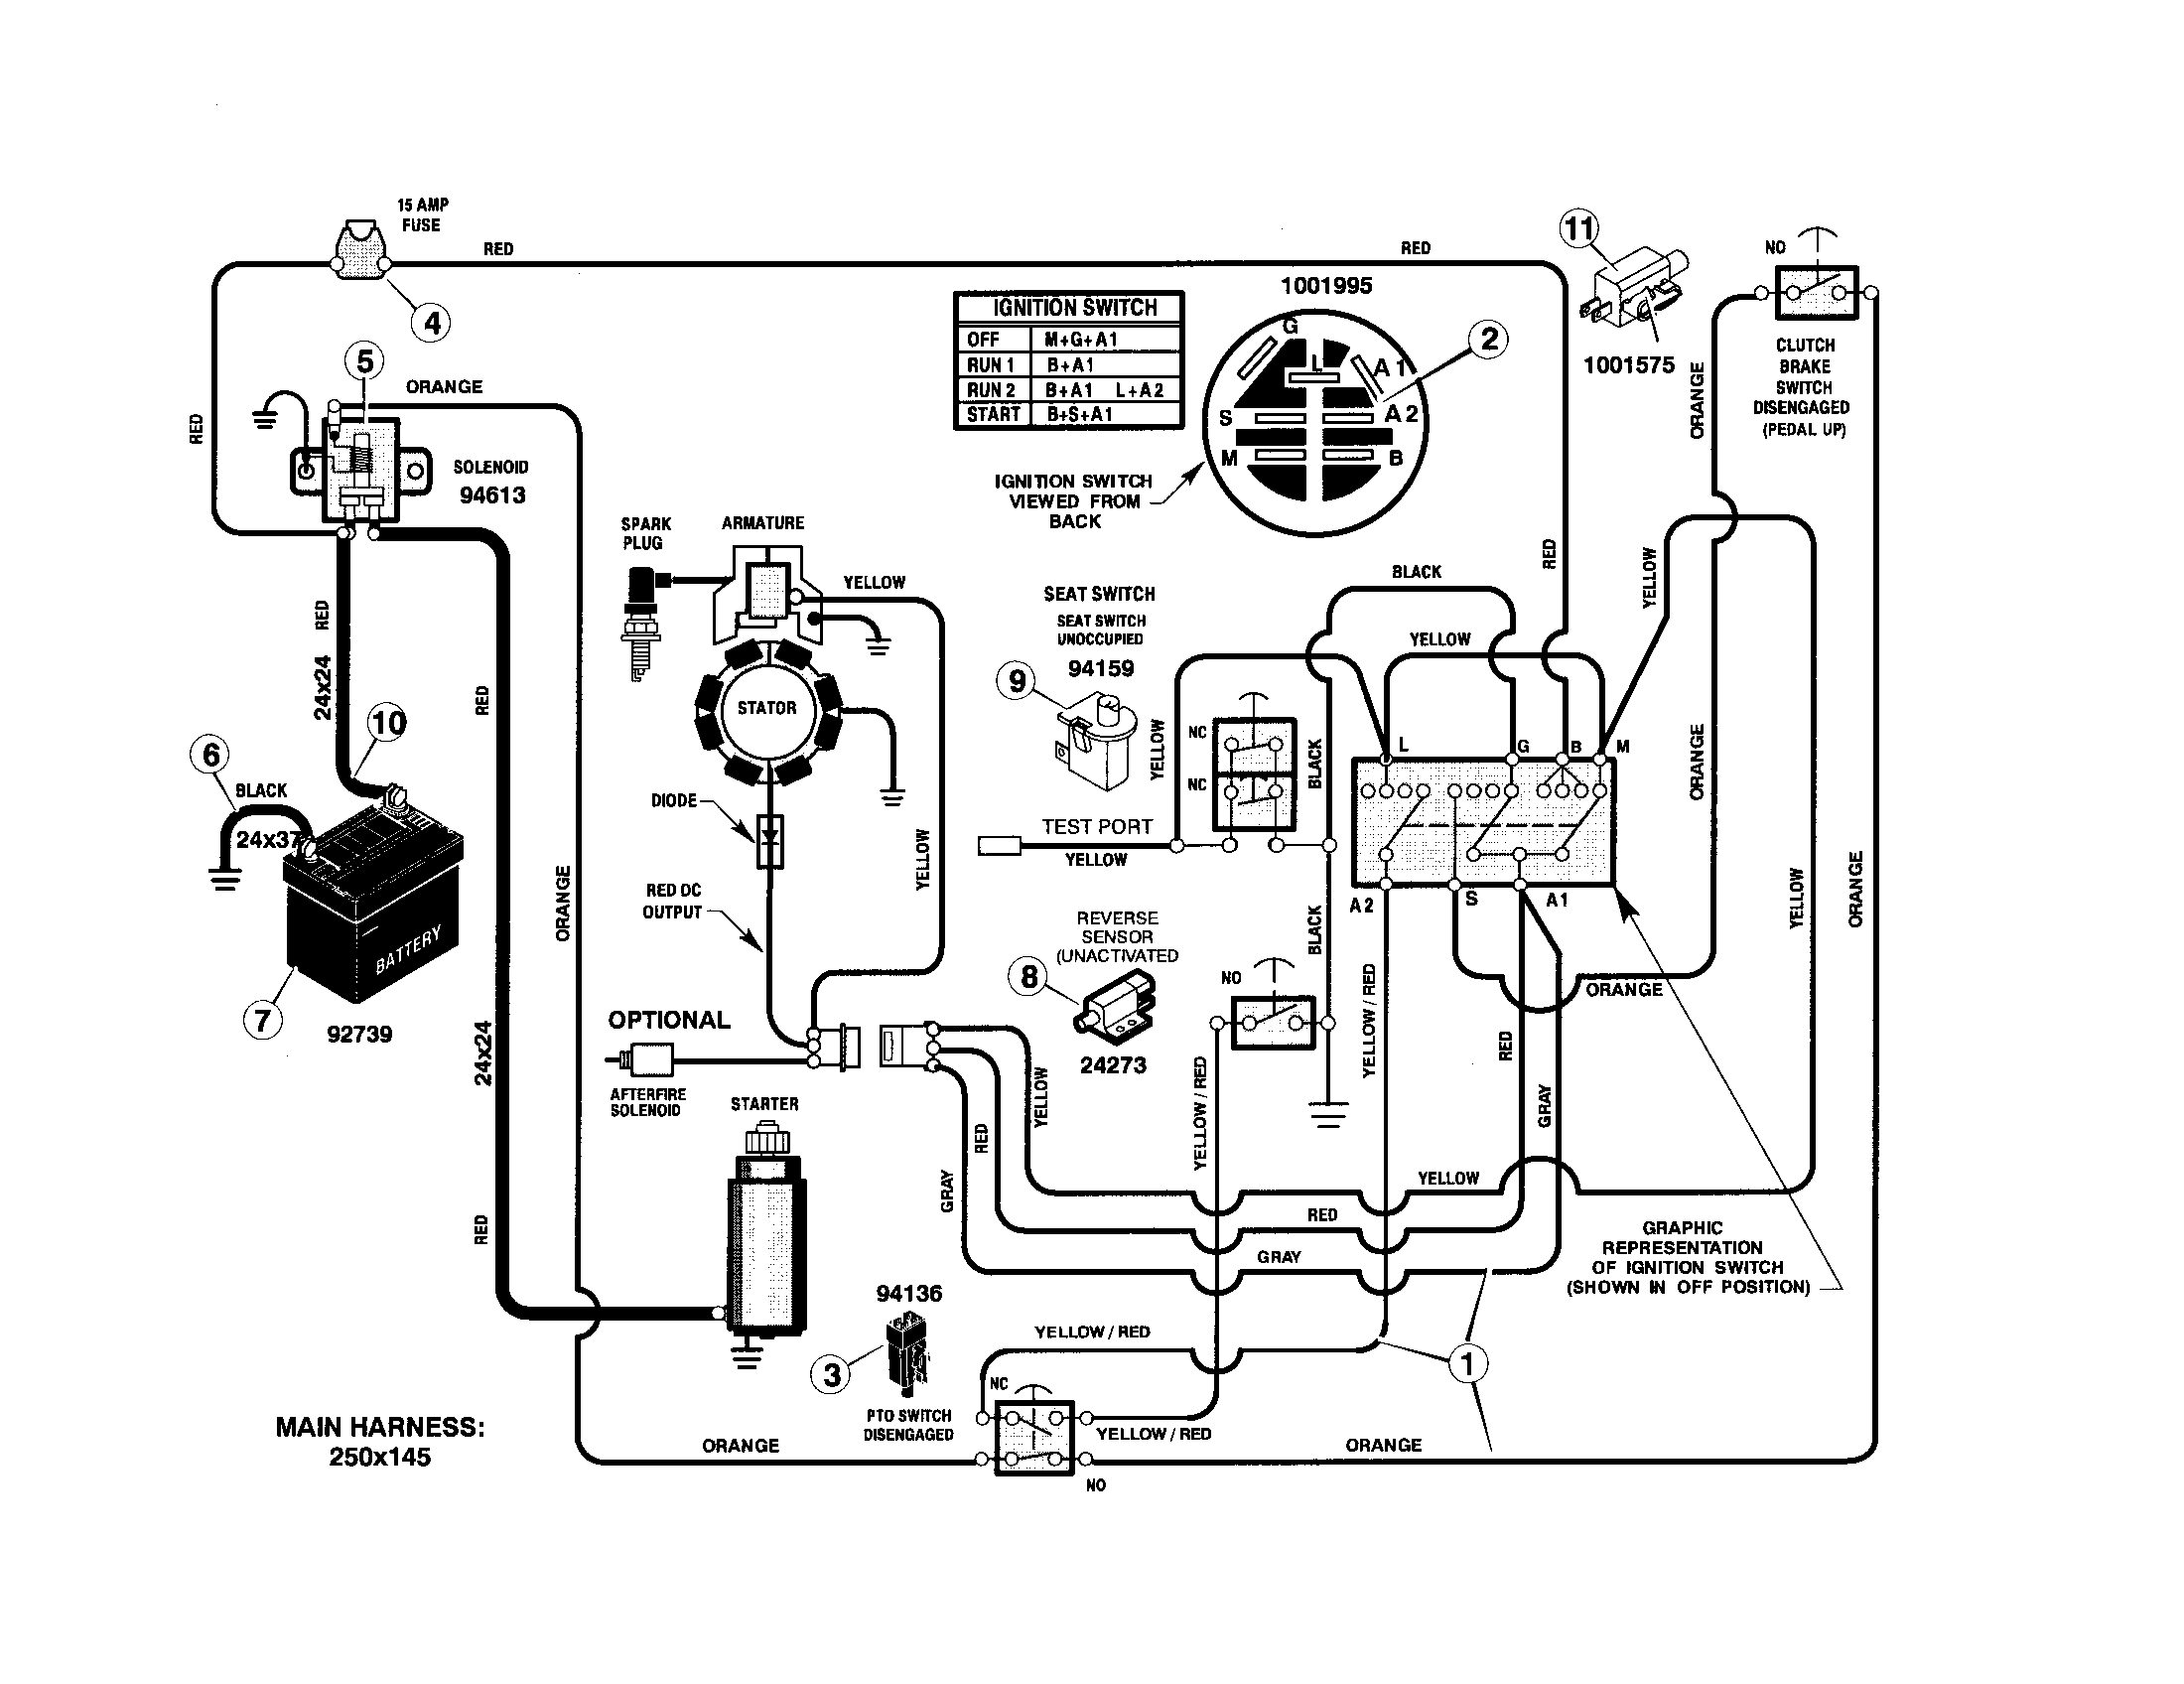 Ford 4500 Tractor Parts Diagram Sel. Ford. Auto Wiring Diagram